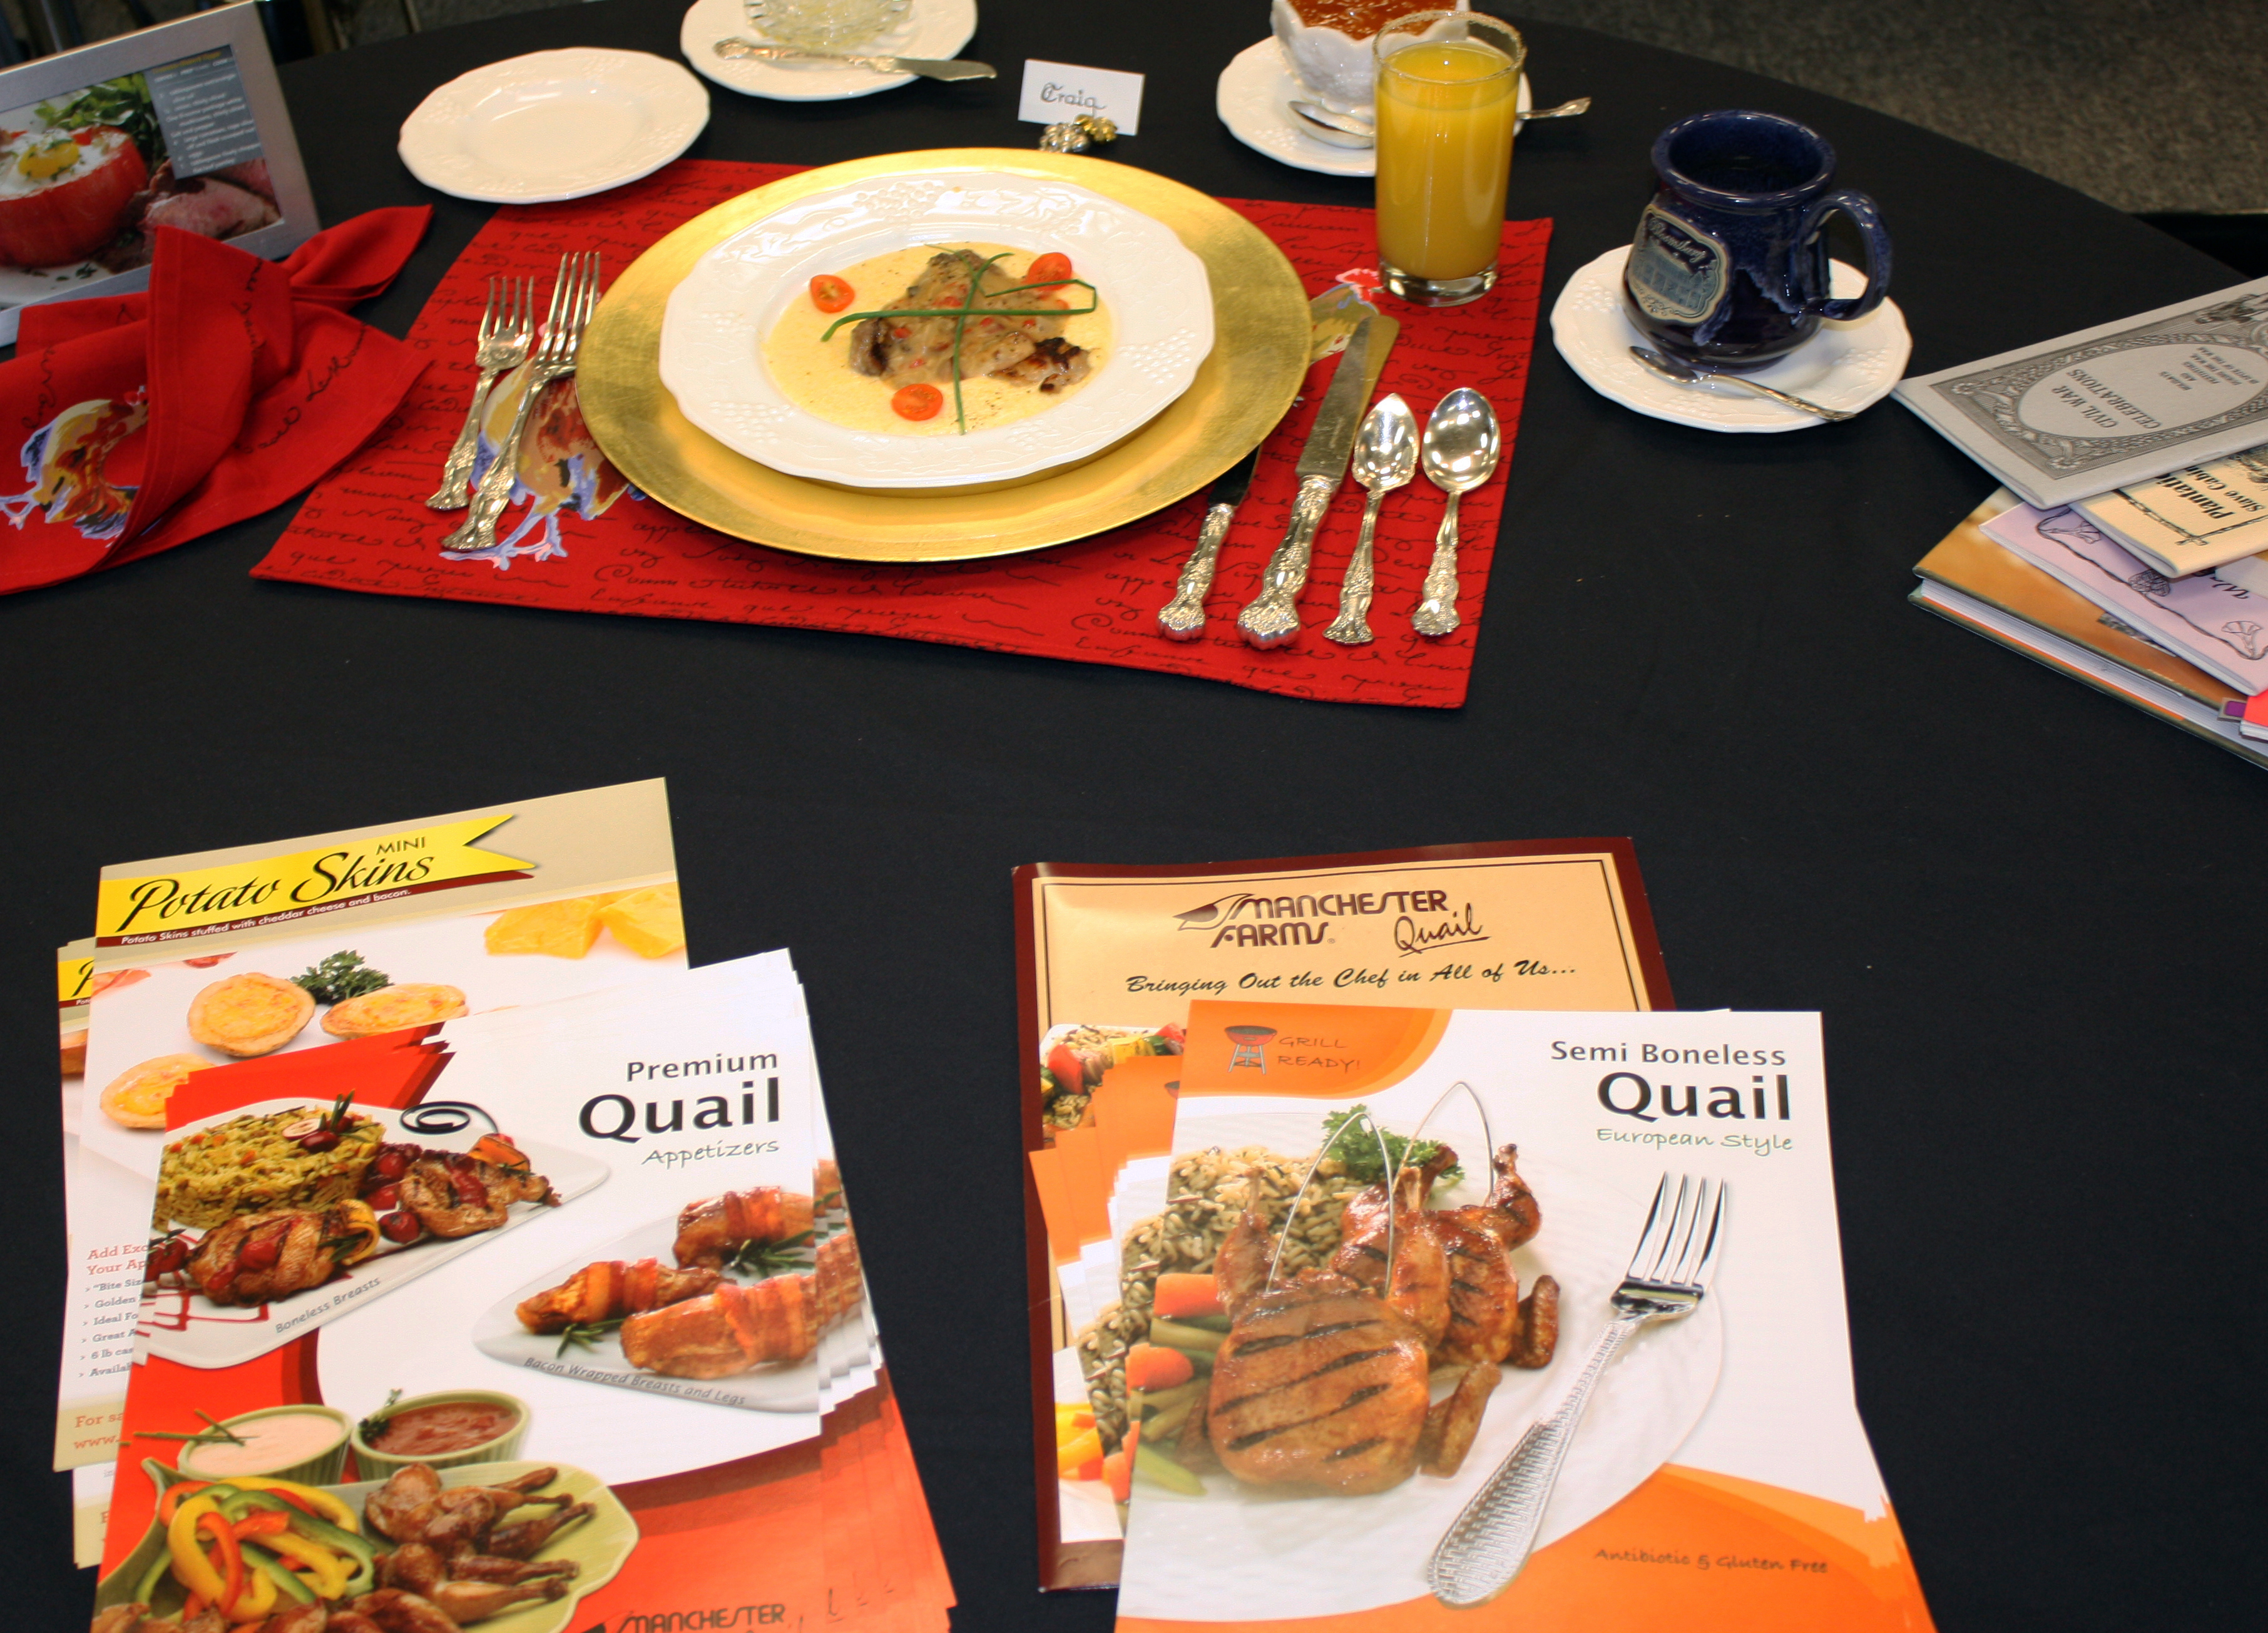 Perfect table setting featuring a plate of quail and grits.